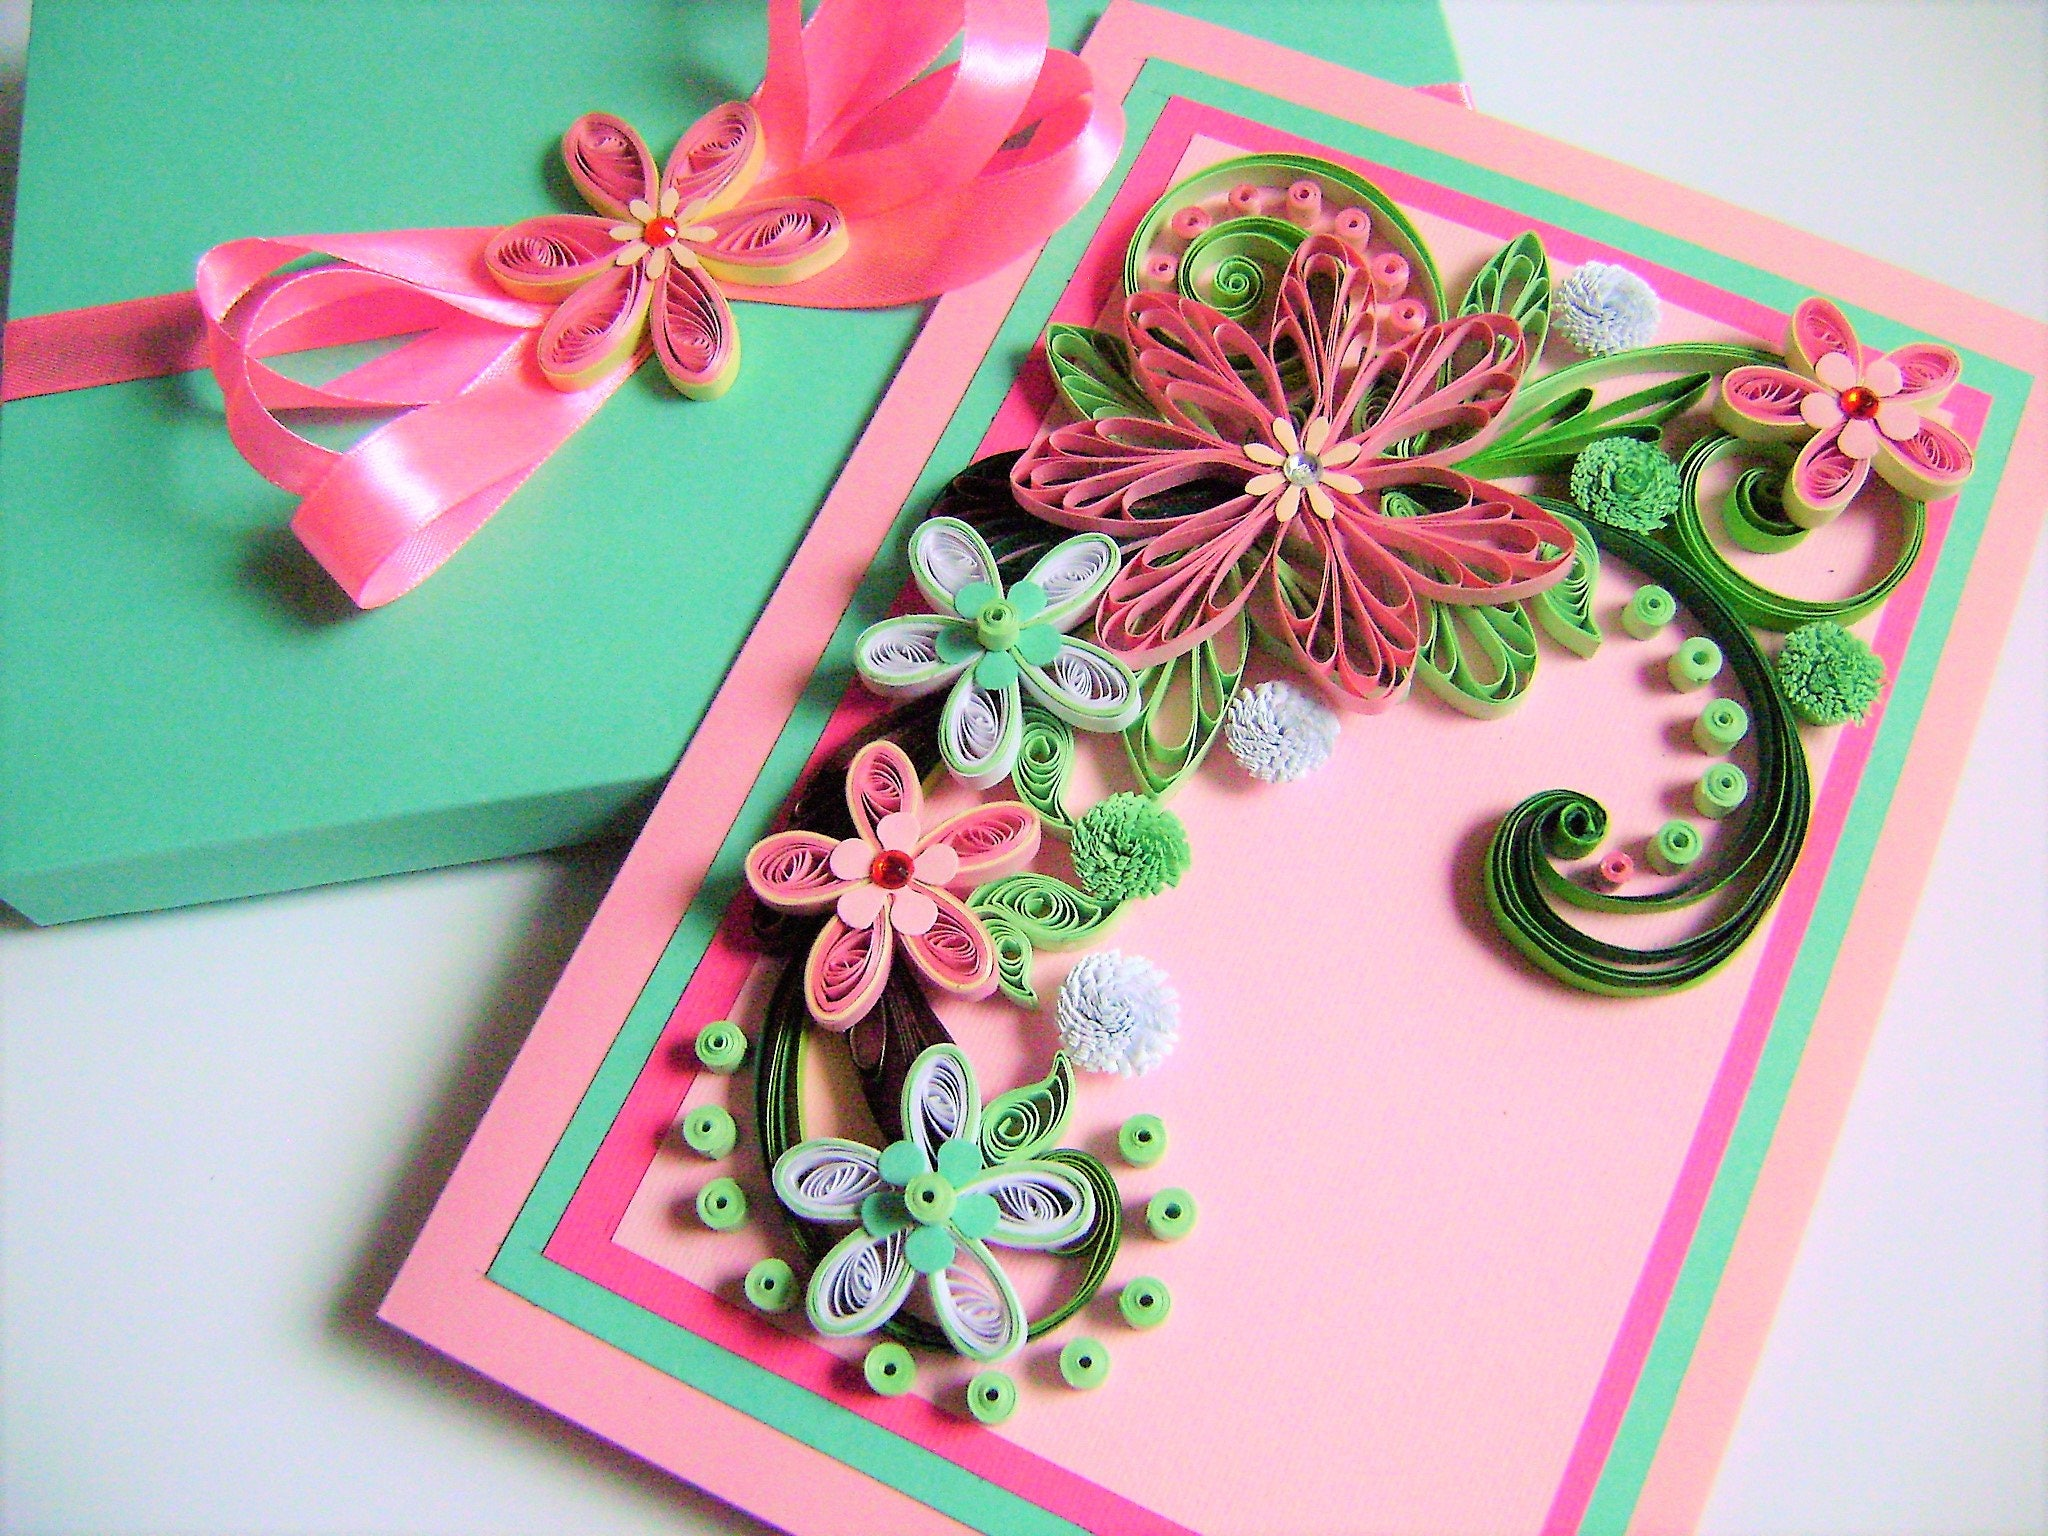 Flower wedding cardwedding invitation cardquilling greeting card flower wedding cardwedding invitation cardquilling greeting cardanniversary cardquilled kristyandbryce Images